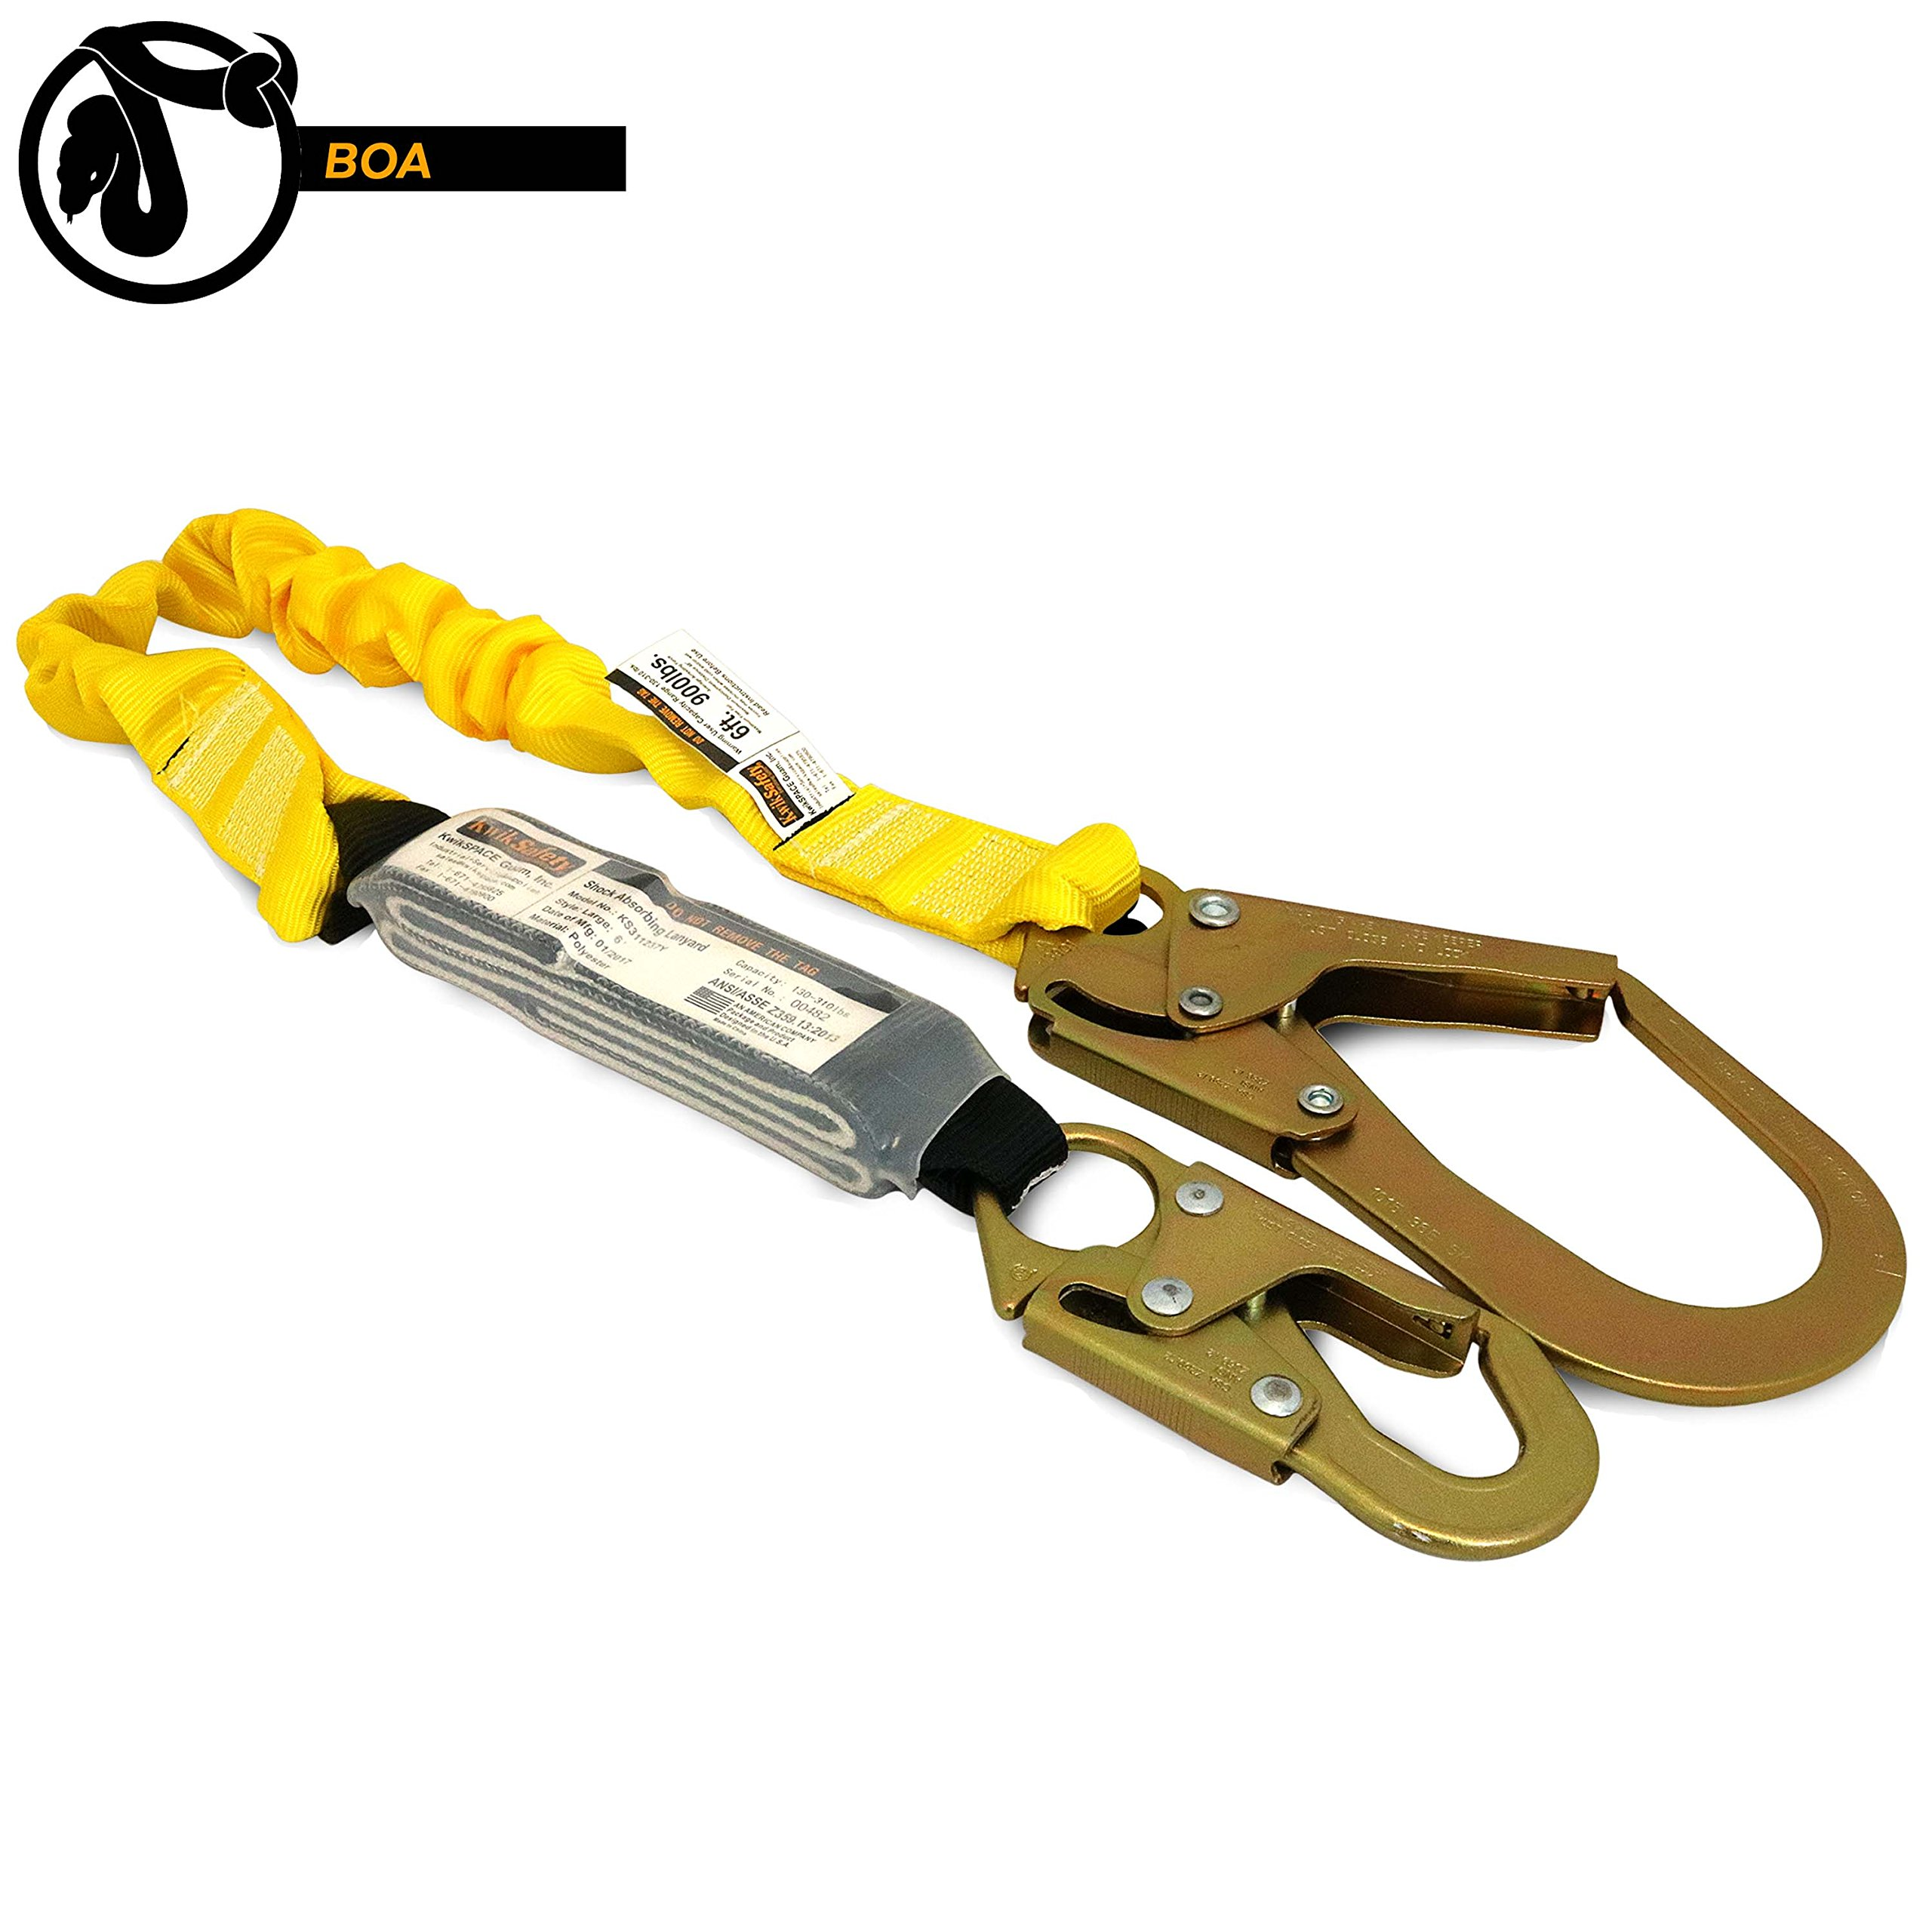 KwikSafety BOA | Single Leg 6ft Tubular Stretch Safety Lanyard | OSHA Approved ANSI Compliant Fall Protection | EXTERNAL Shock Absorber | Construction Arborist Roofing | Snap & Rebar Hook Connectors by KwikSafety (Image #1)